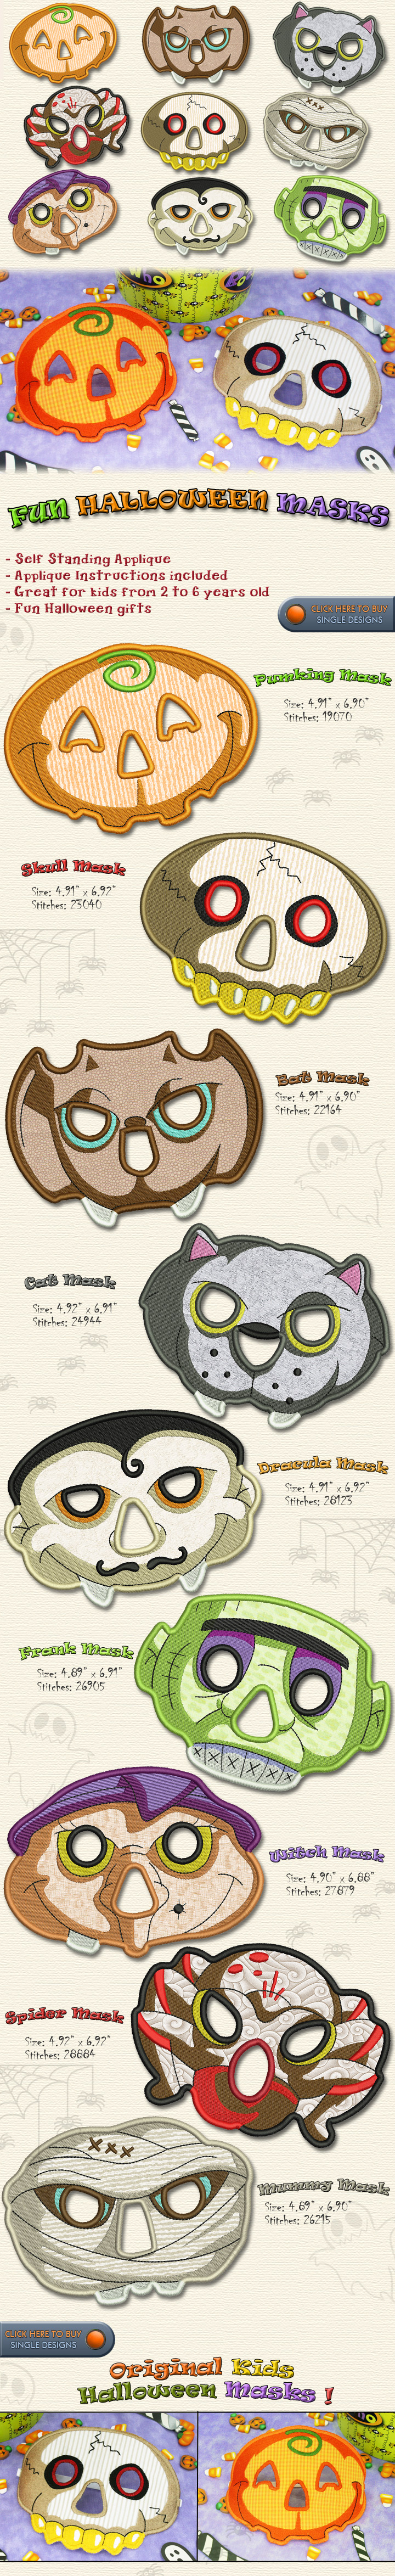 HALLOWEEN MASKS IN THE HOOP - Embroidery Designs Free Embroidery ...